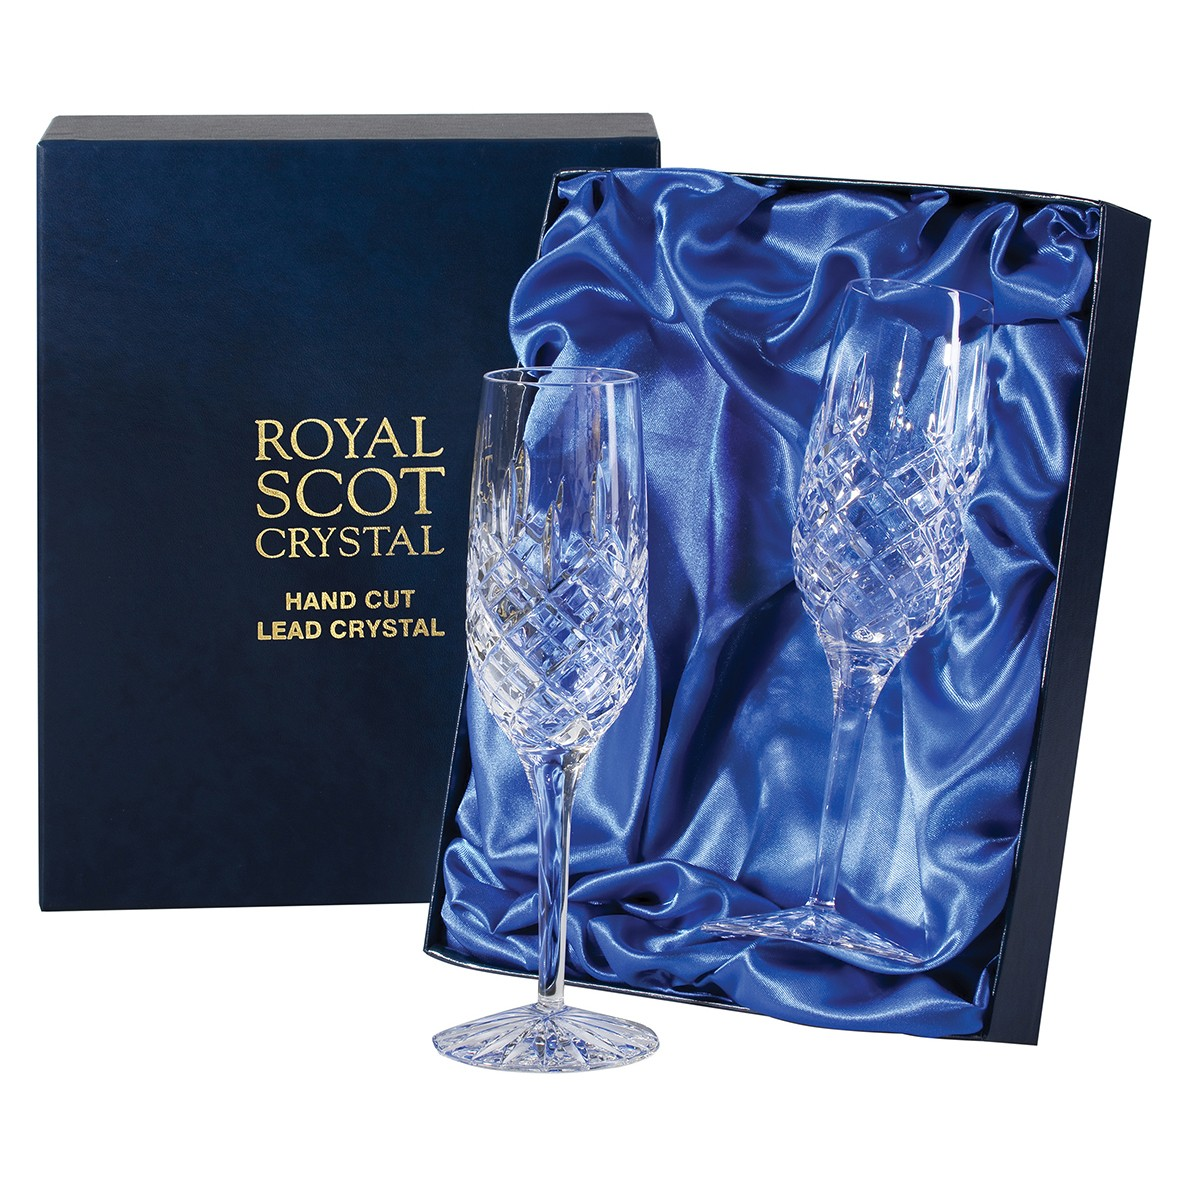 2 royal scot crystal champagne flutes london presentation boxed. Black Bedroom Furniture Sets. Home Design Ideas